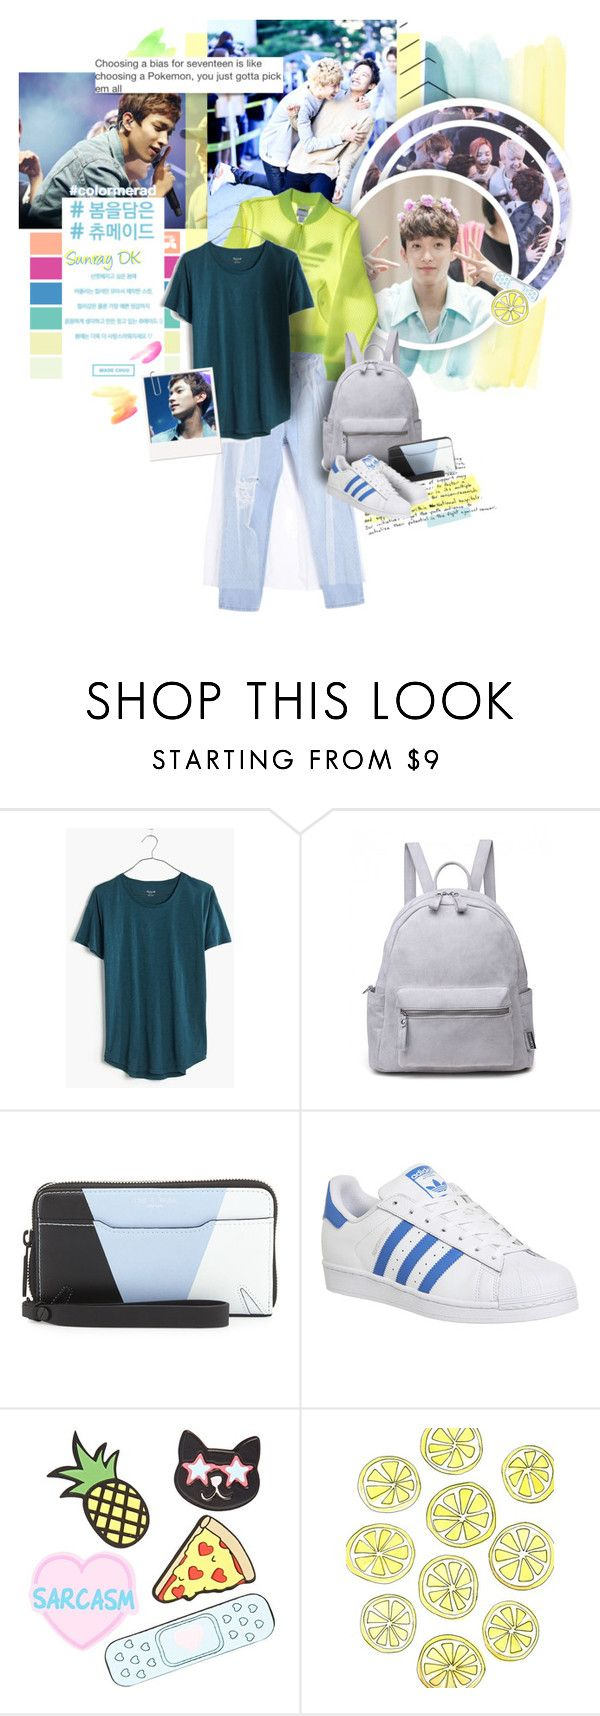 """I used to need wake-up calls in the morning"" by muzikgurl ❤ liked on Polyvore featuring Madewell, rag & bone, adidas and Forever 21"